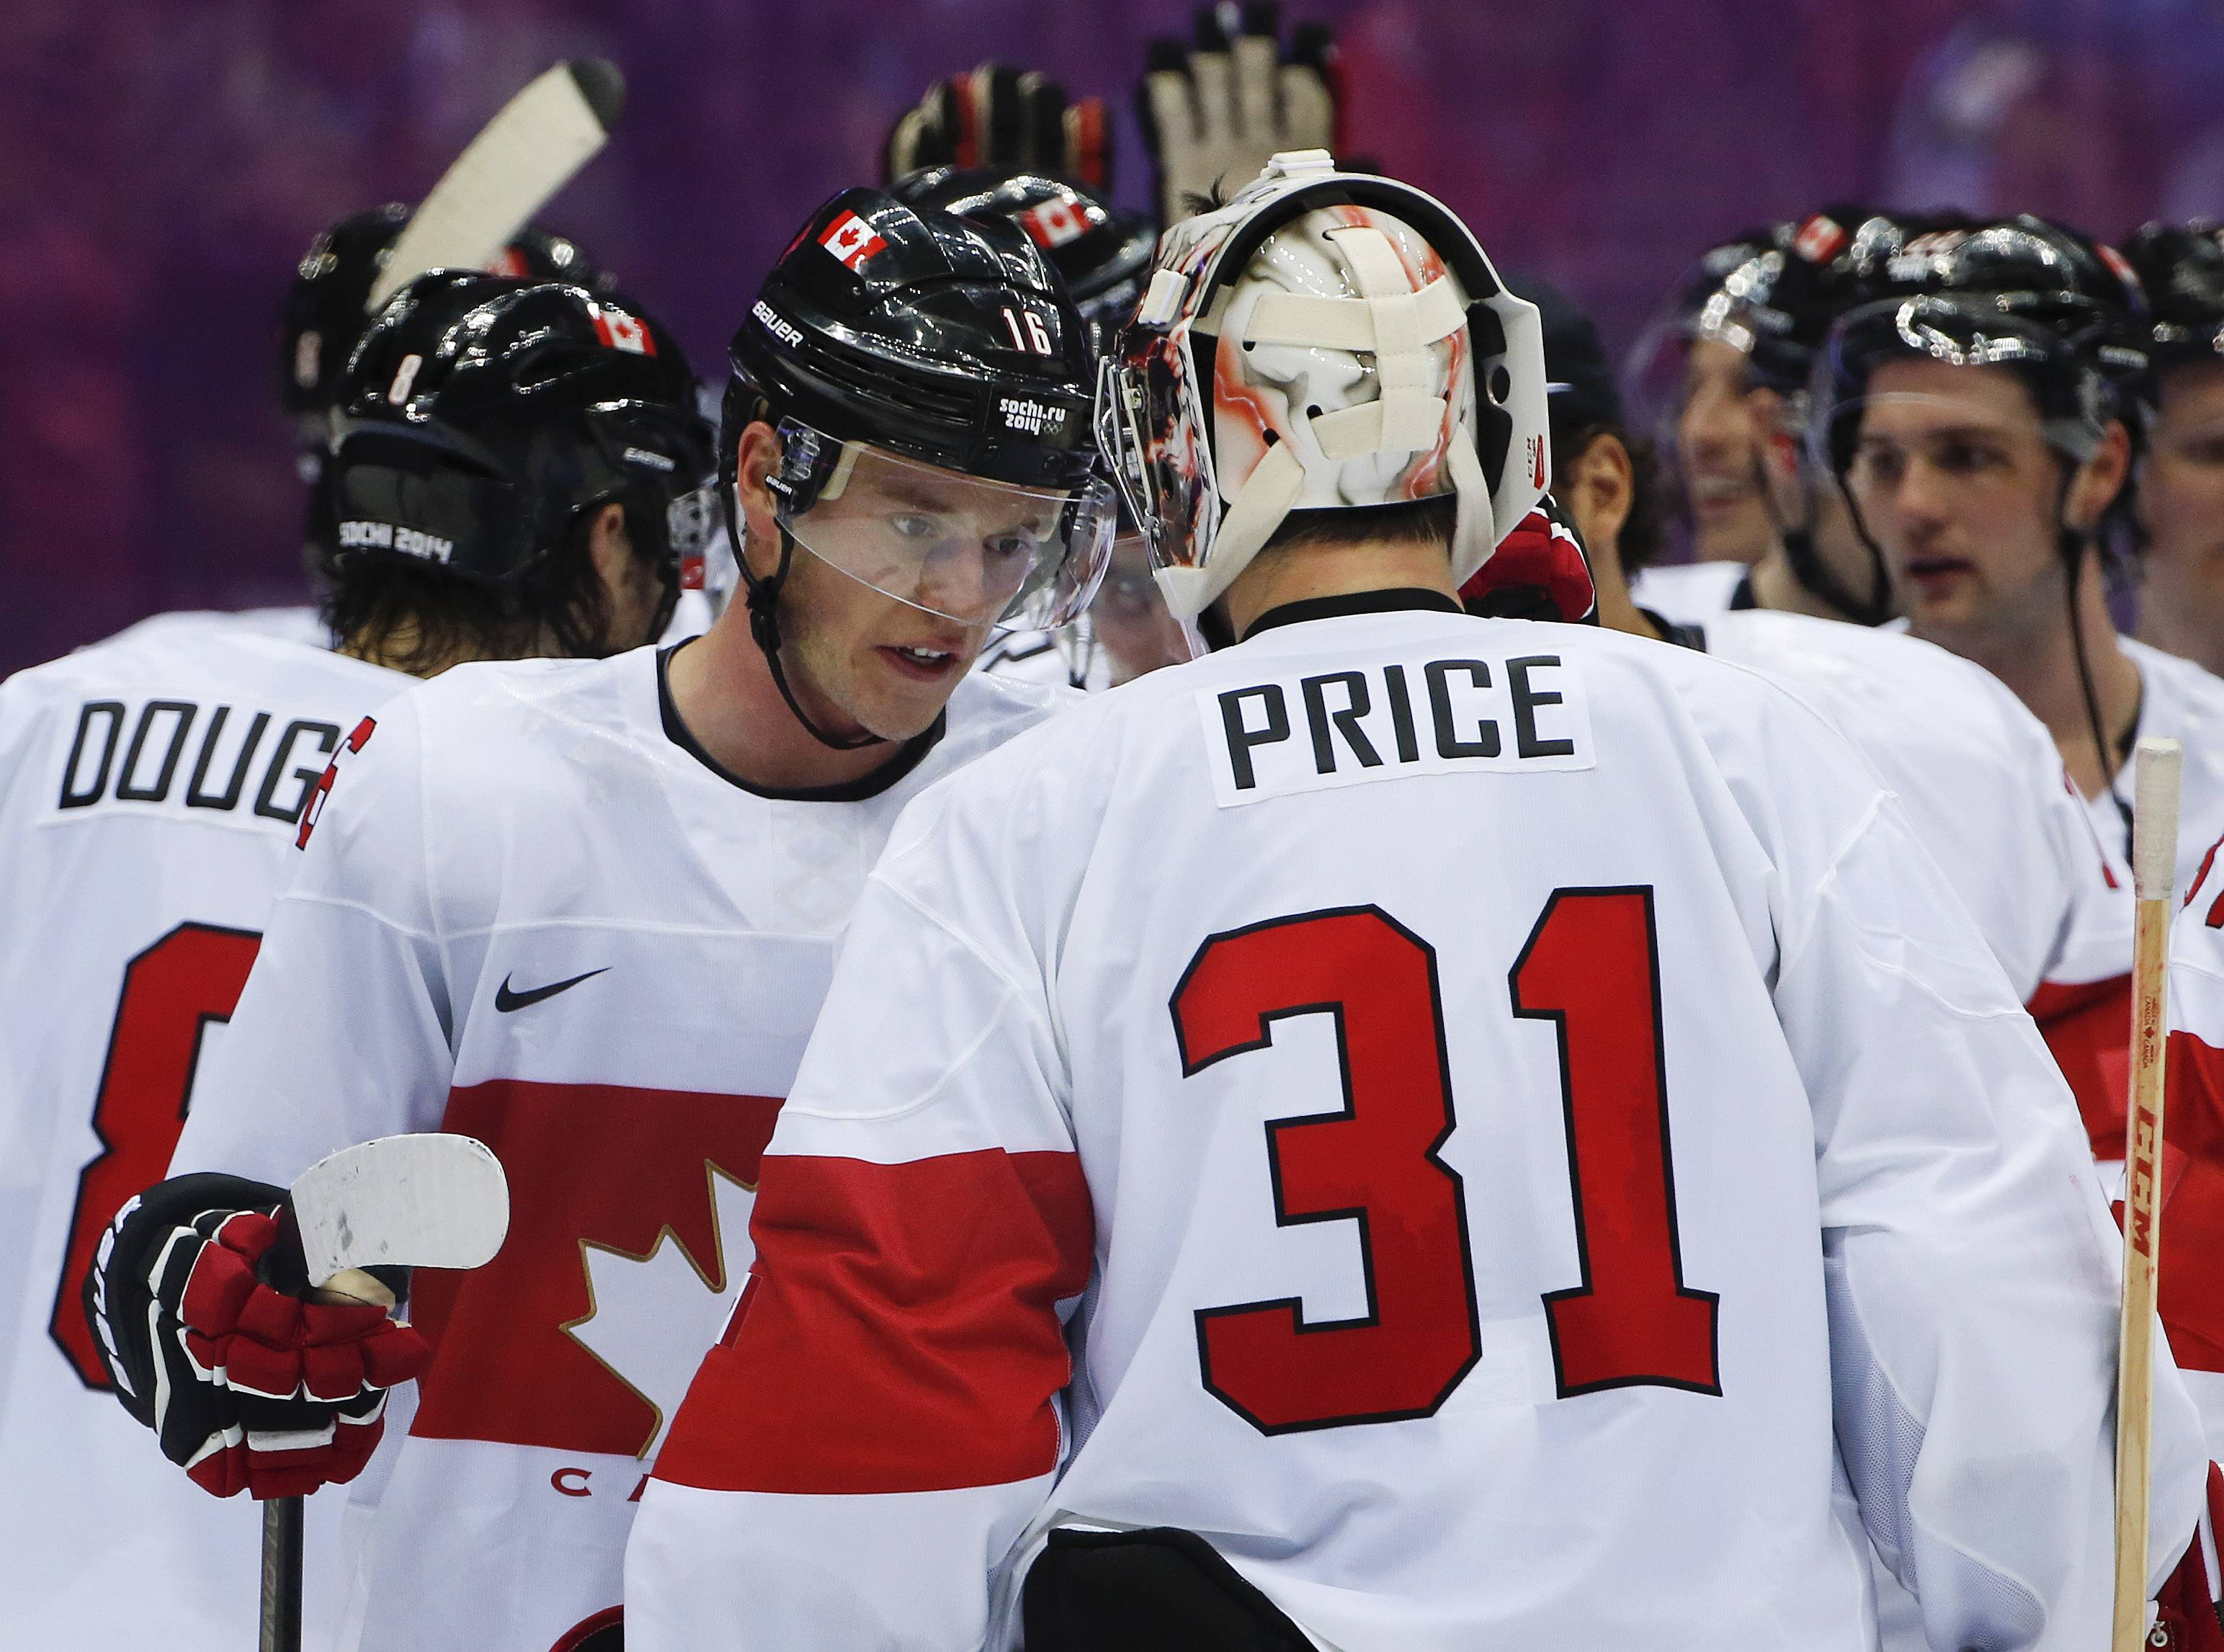 Canada forward Jonathan Toews congratulates Canada goaltender Carey Price Wednesday after Canada's 2-1 win over Latvia during a men's quarterfinal ice hockey game at the 2014 Winter Olympics in Sochi, Russia.